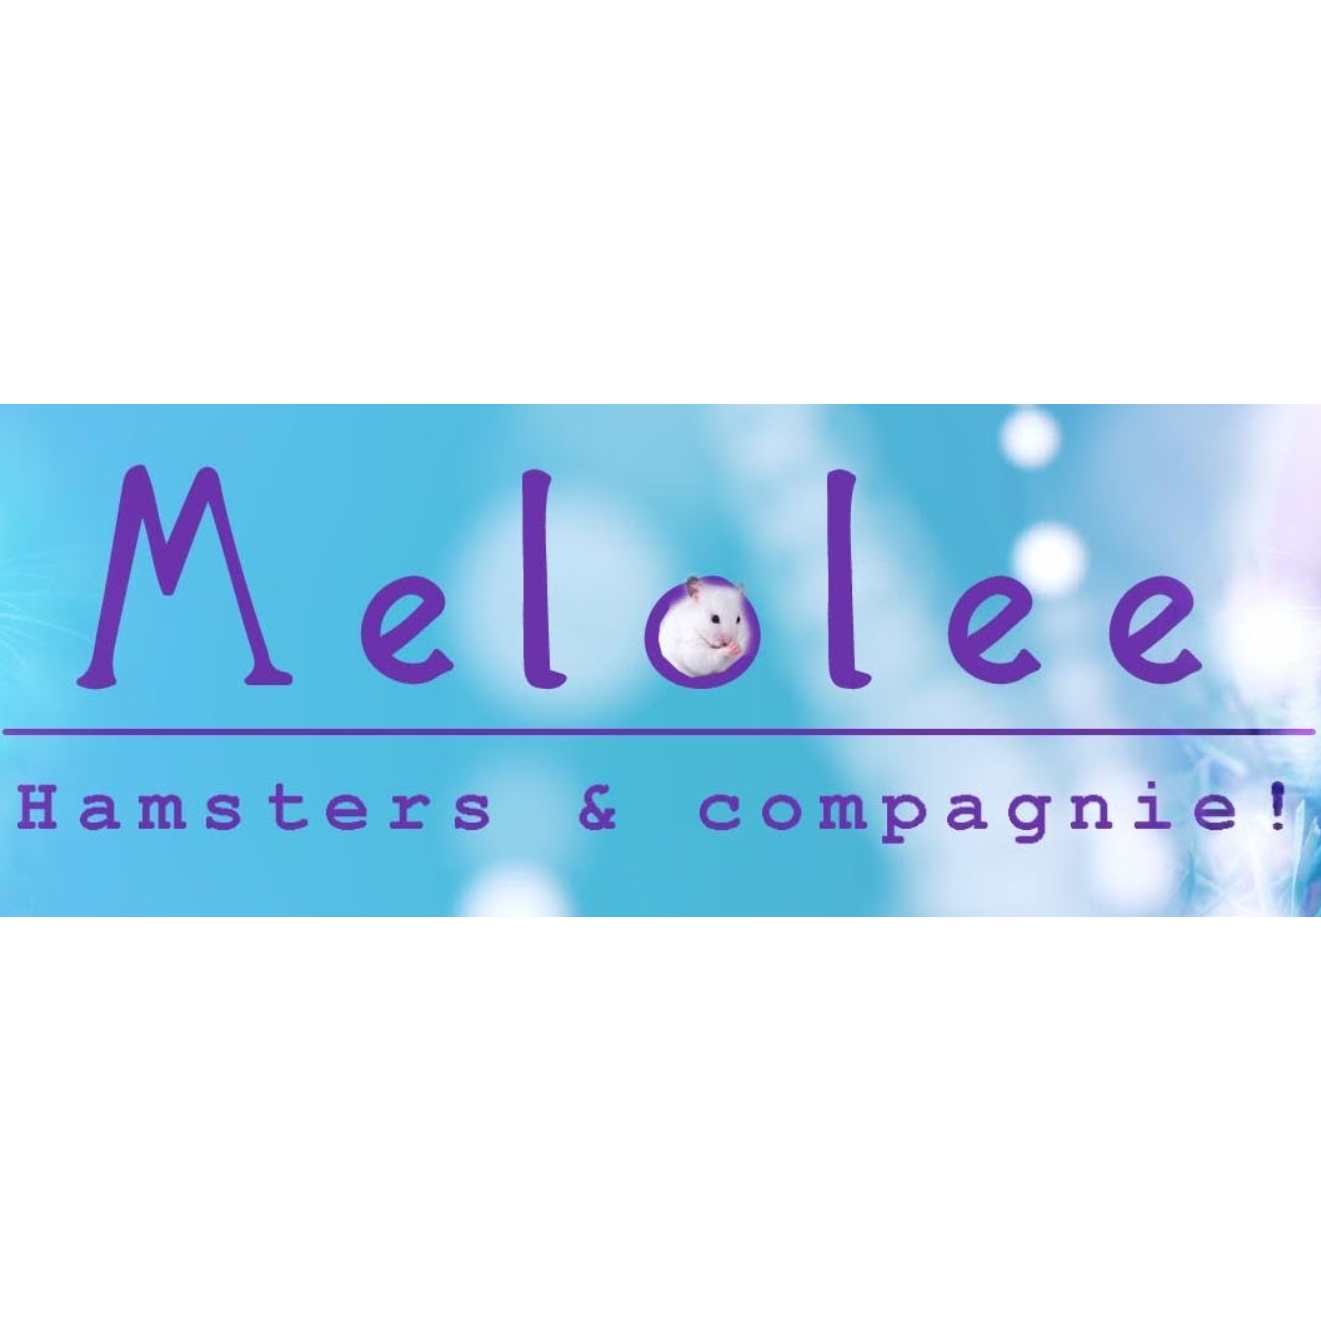 Melolee